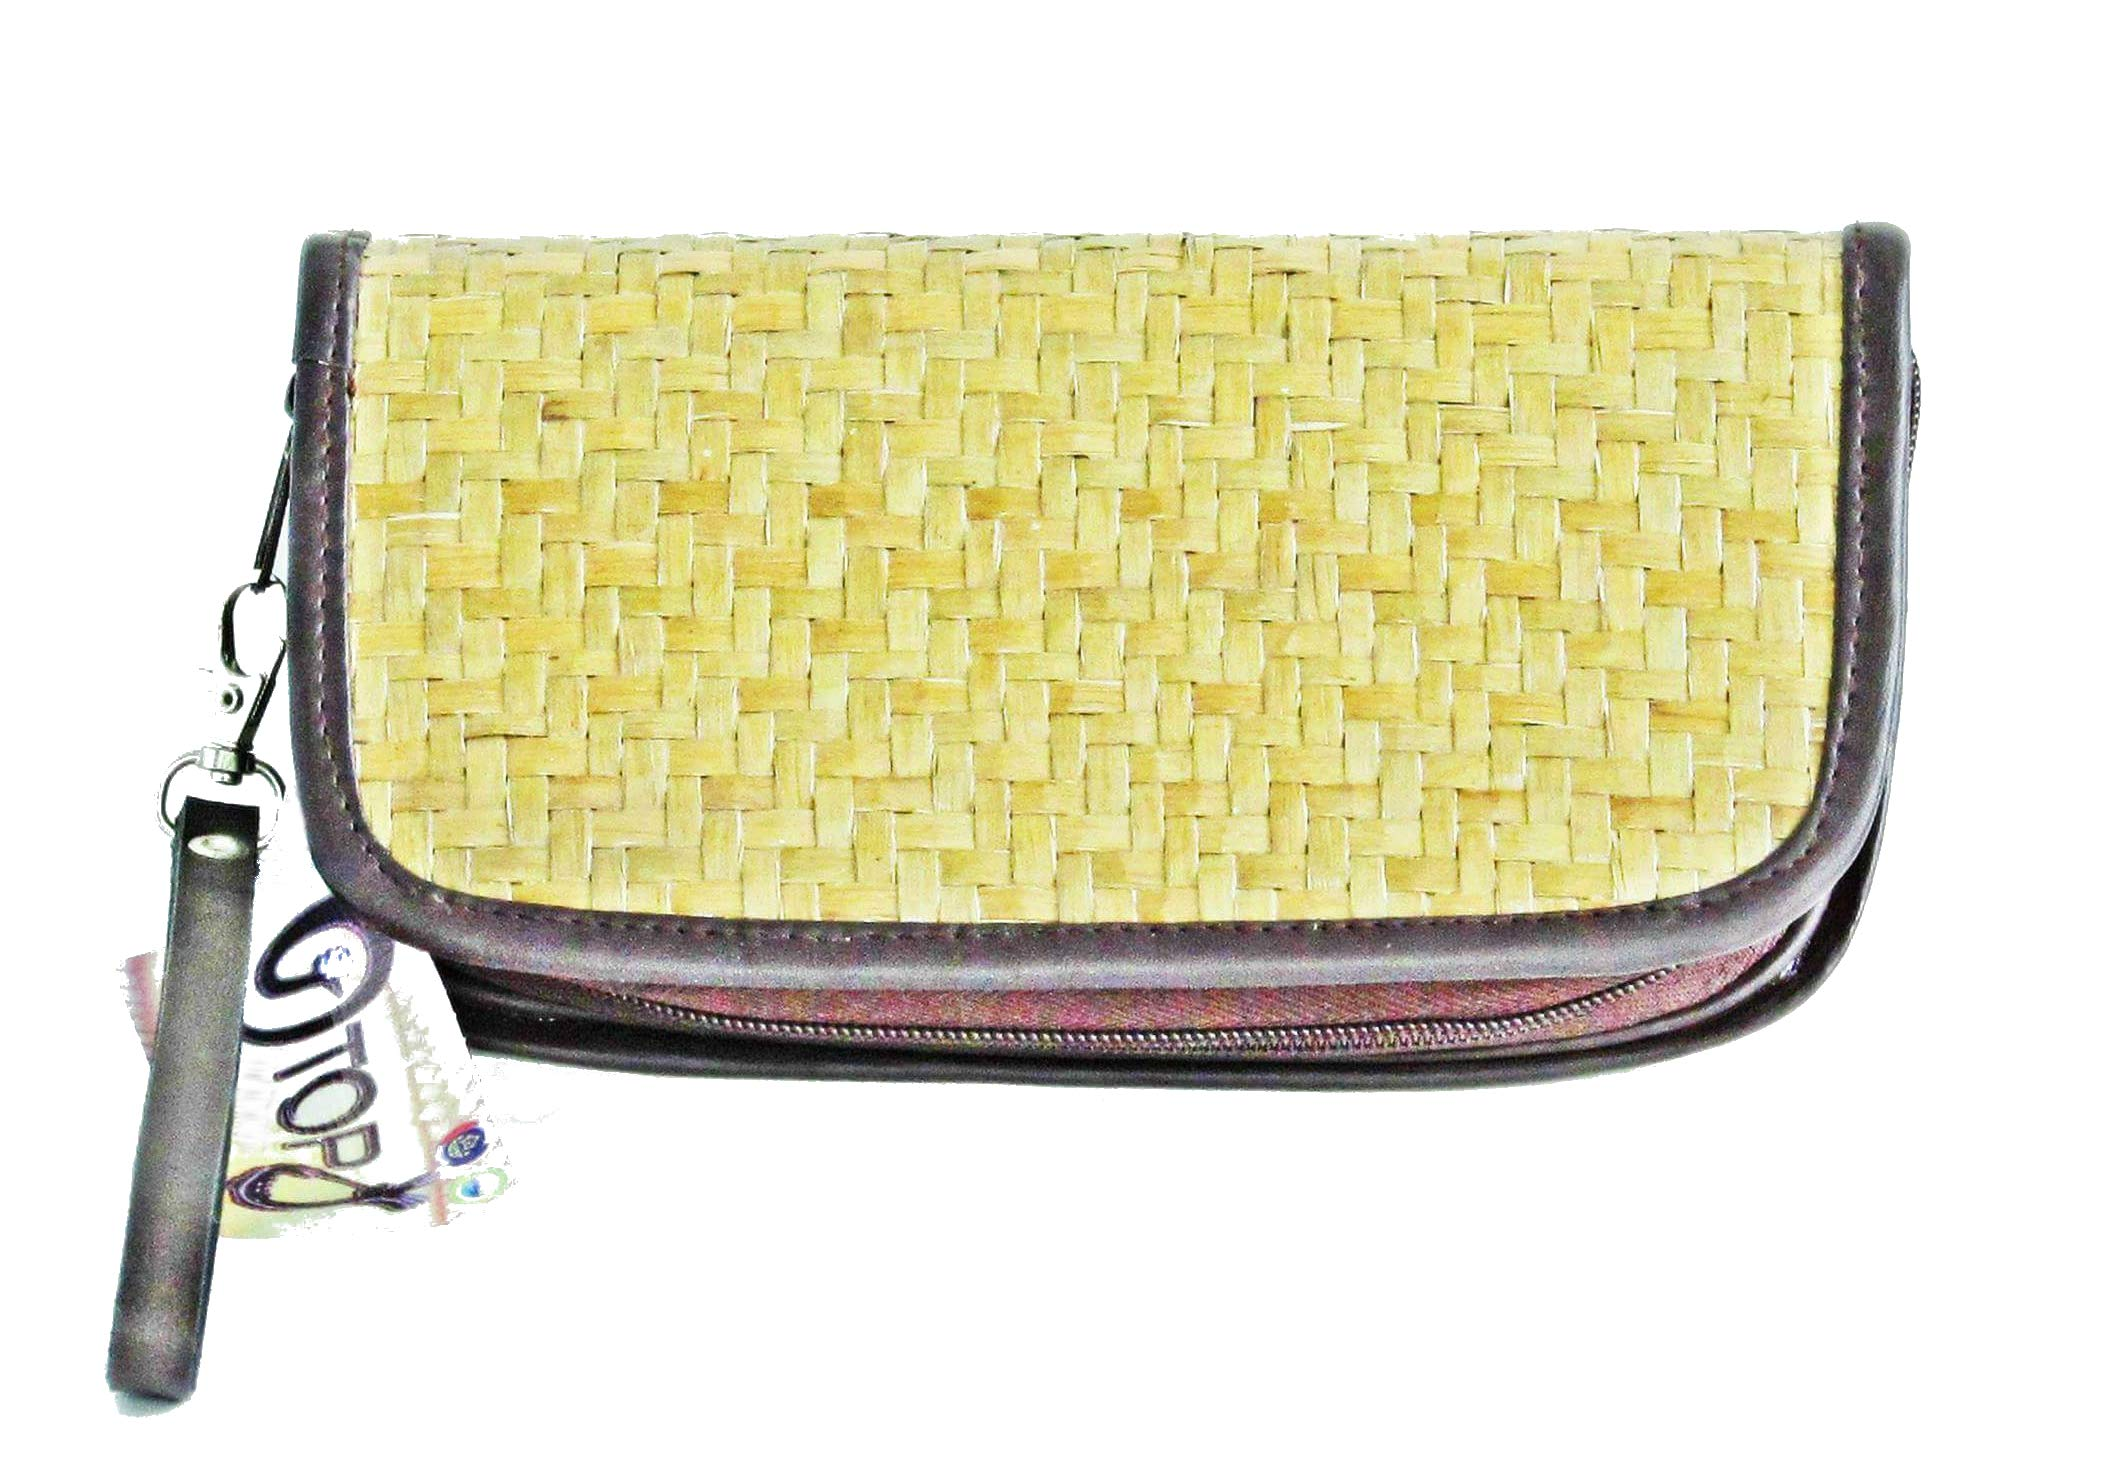 Authentic Siamese Seagrass Straw Wristlet Wallet Hand Woven by Local Thai Artisans (Natural)